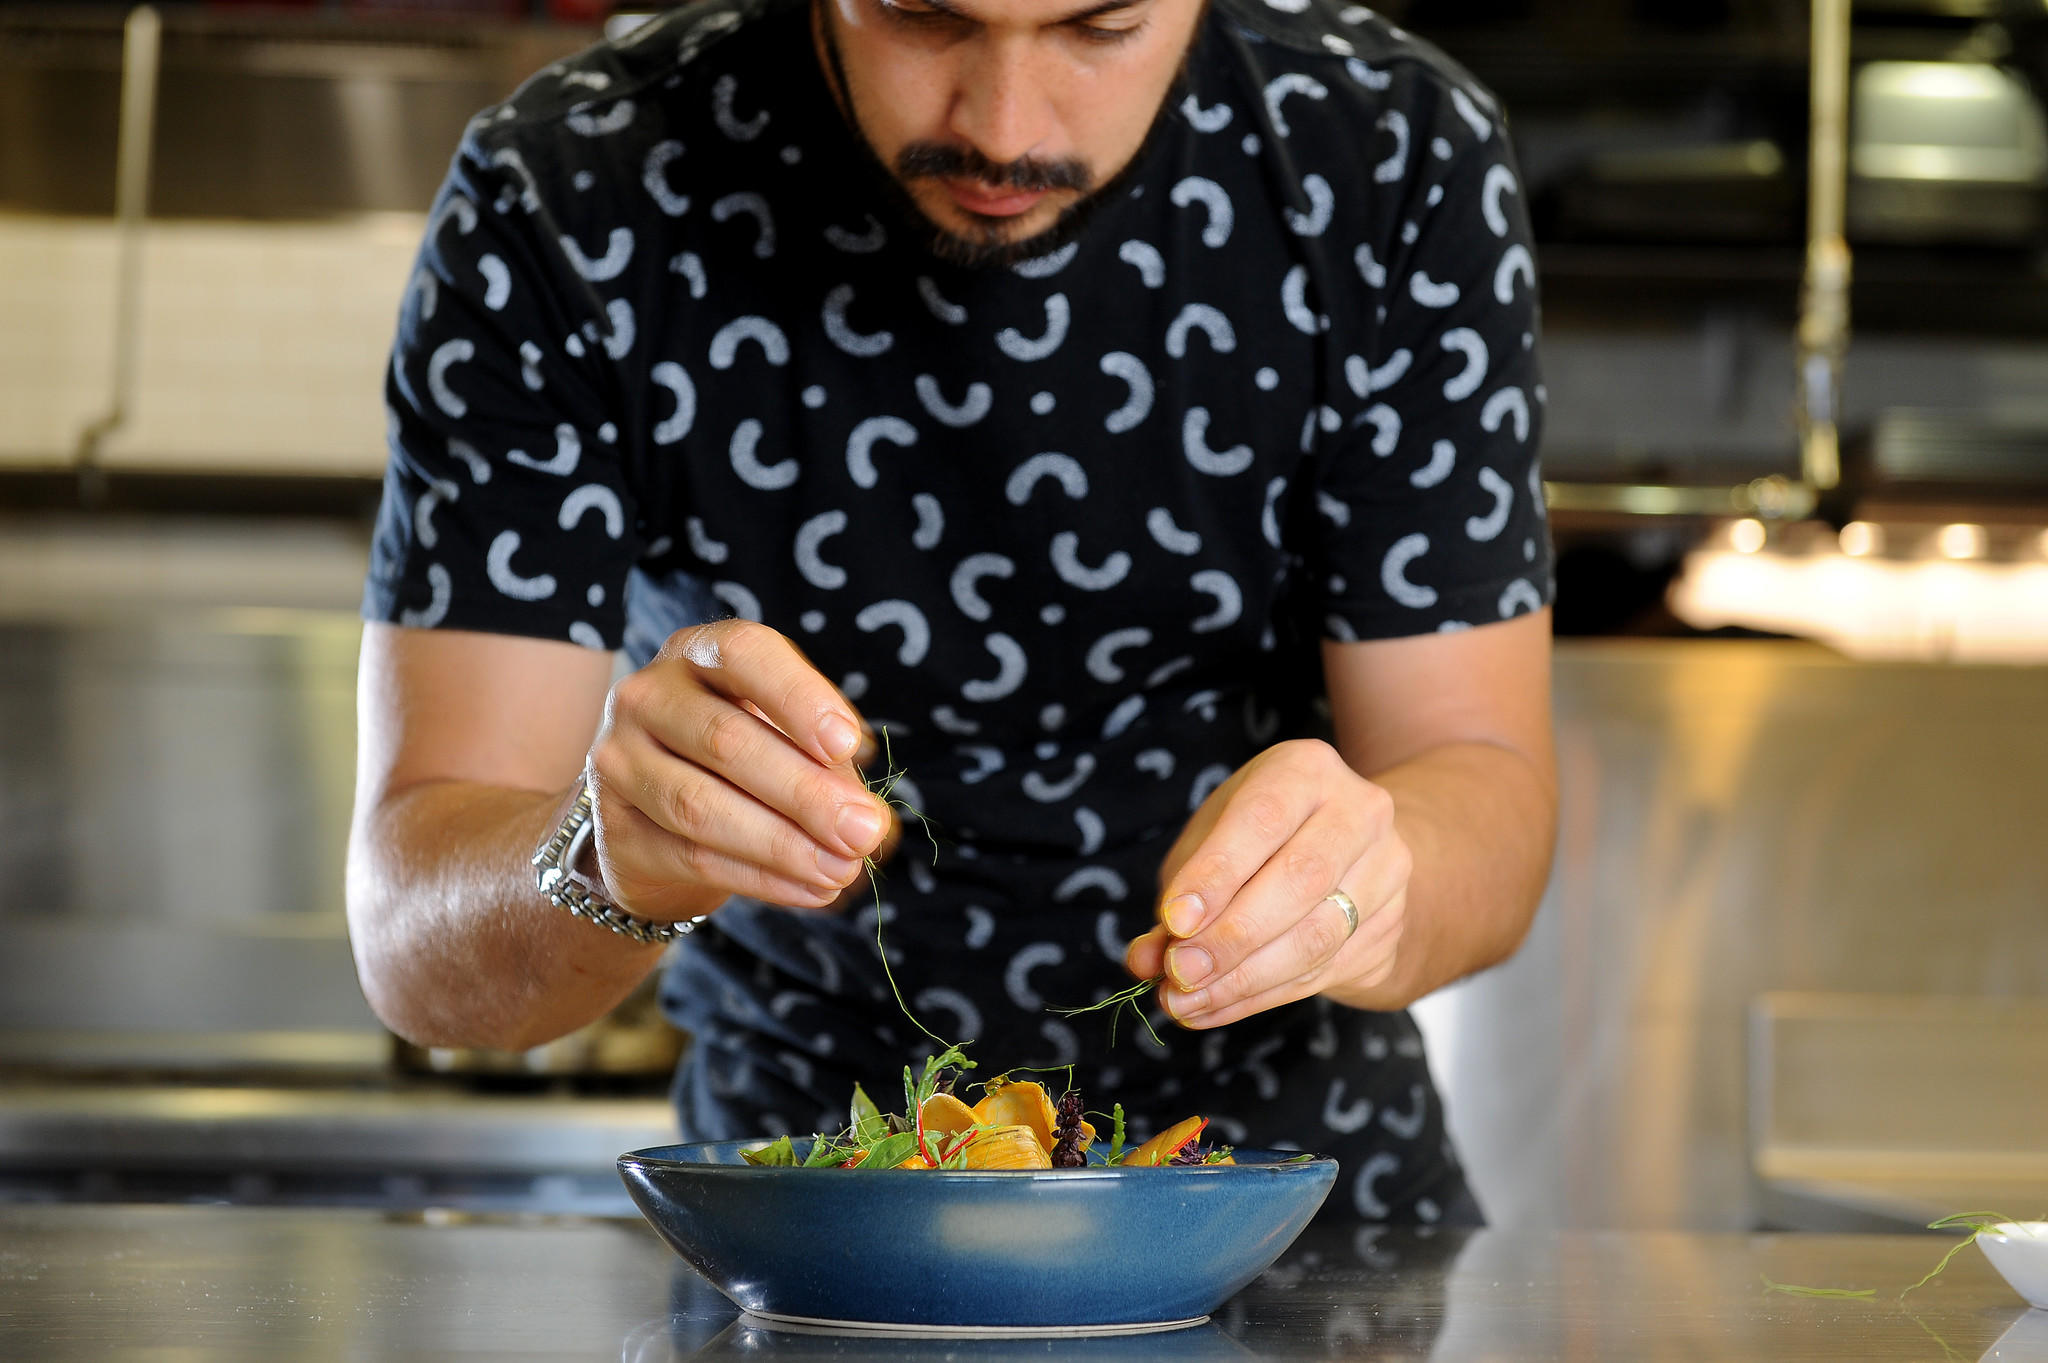 Louis Tikaram, the young Australian chef at E.P. & L.P., makes turmeric and coconut curry with clams and sea beans. (Christina House / For The Times)